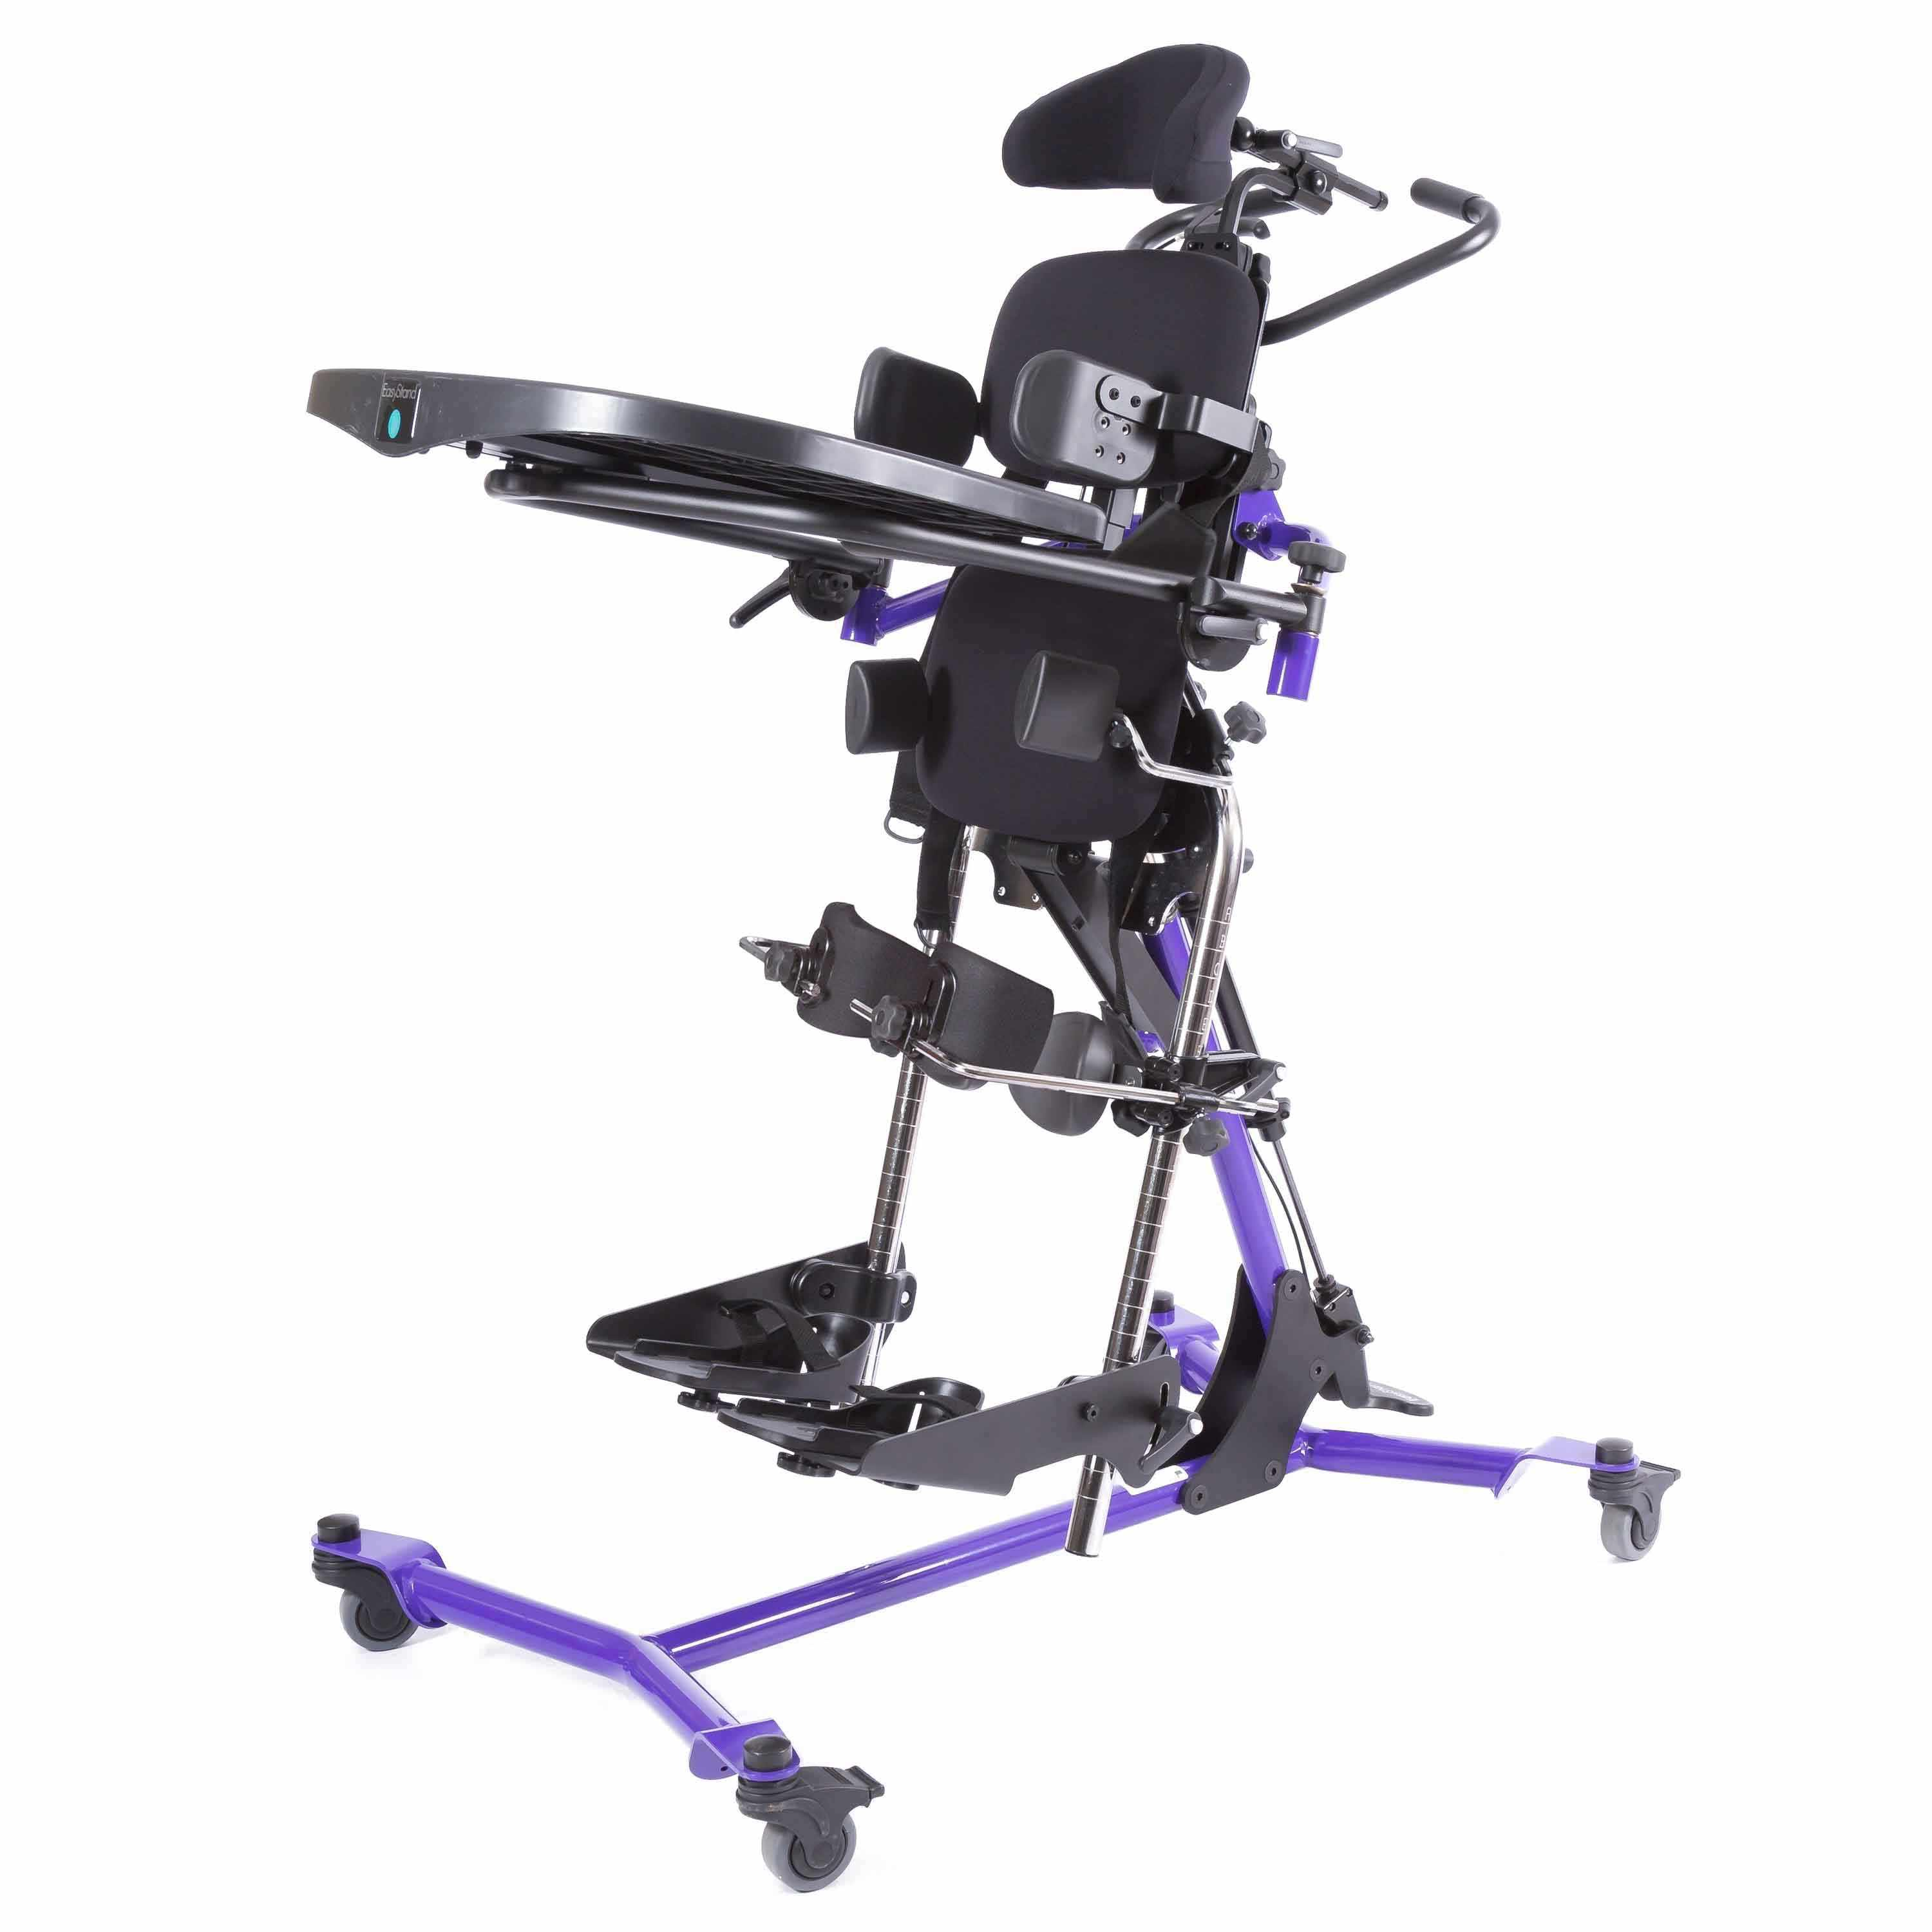 Easystand zing size 2 multi-position stander